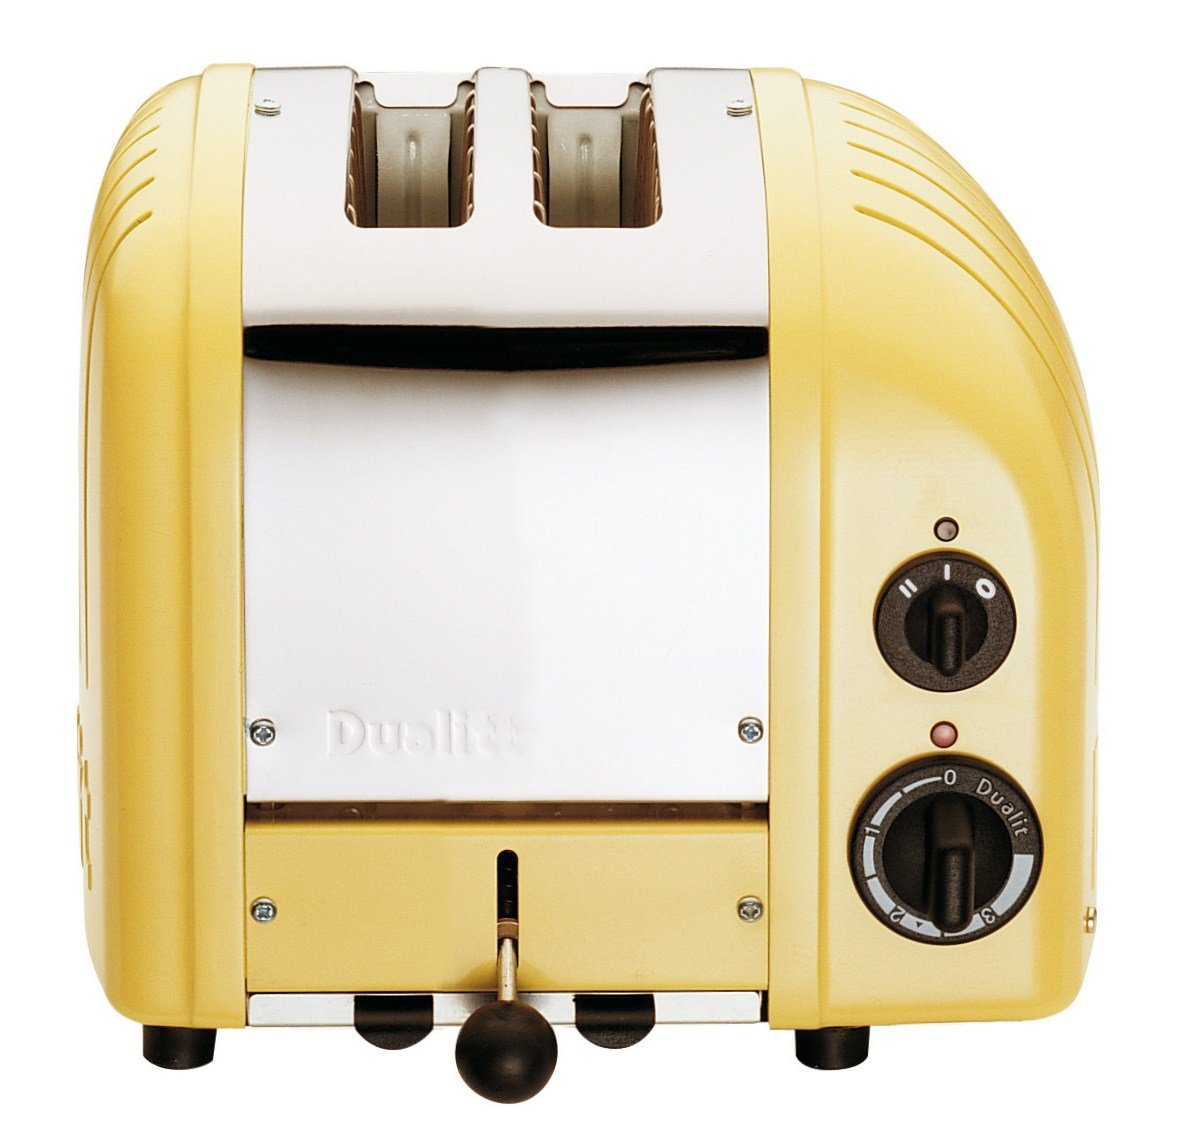 Dualit 2-Slice Toaster, Canary Yellow